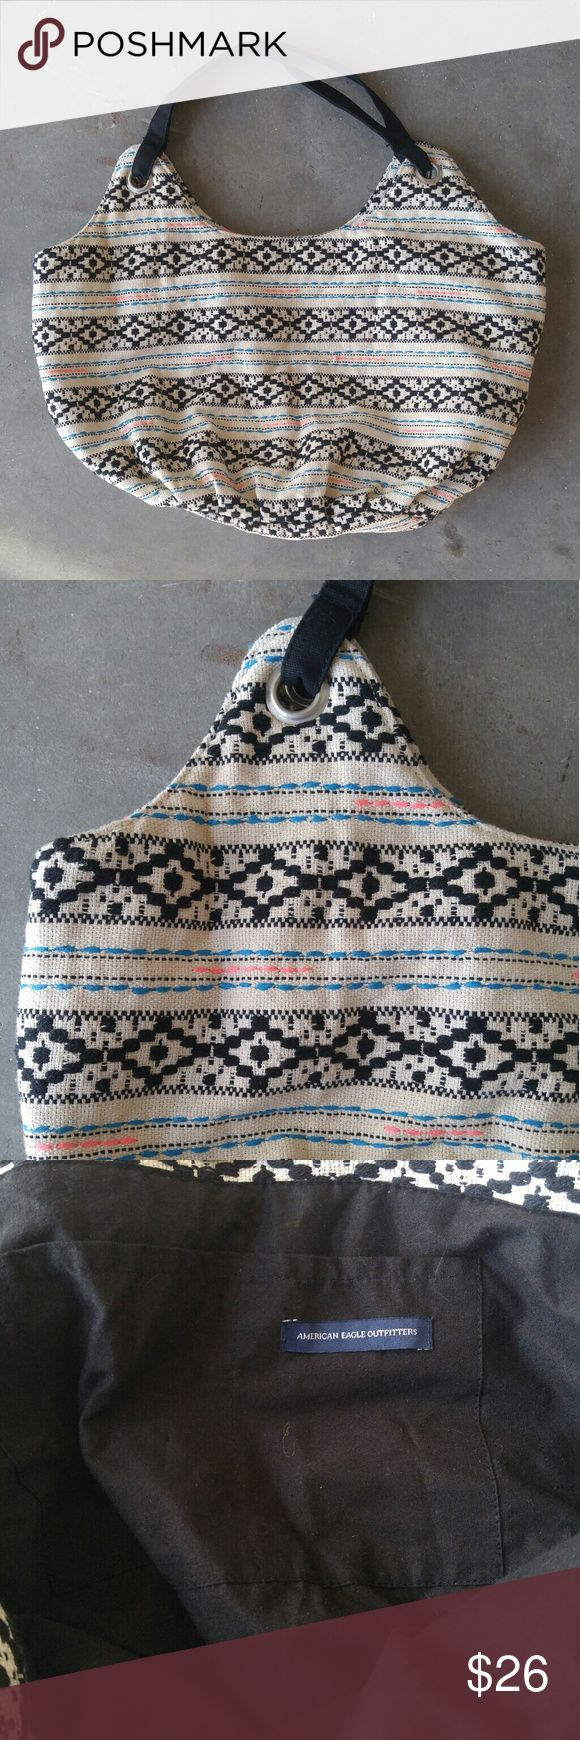 American Eagle Outfitters Tribal Print Tote Bag AEO tote bag in excellent condition! Black, white, pink, and blue striped tribal print. Black lining with one pocket. Snap closure. Please ask any questions. No trades. Make a reasonable offer. Thanks! American Eagle Outfitters Bags Totes